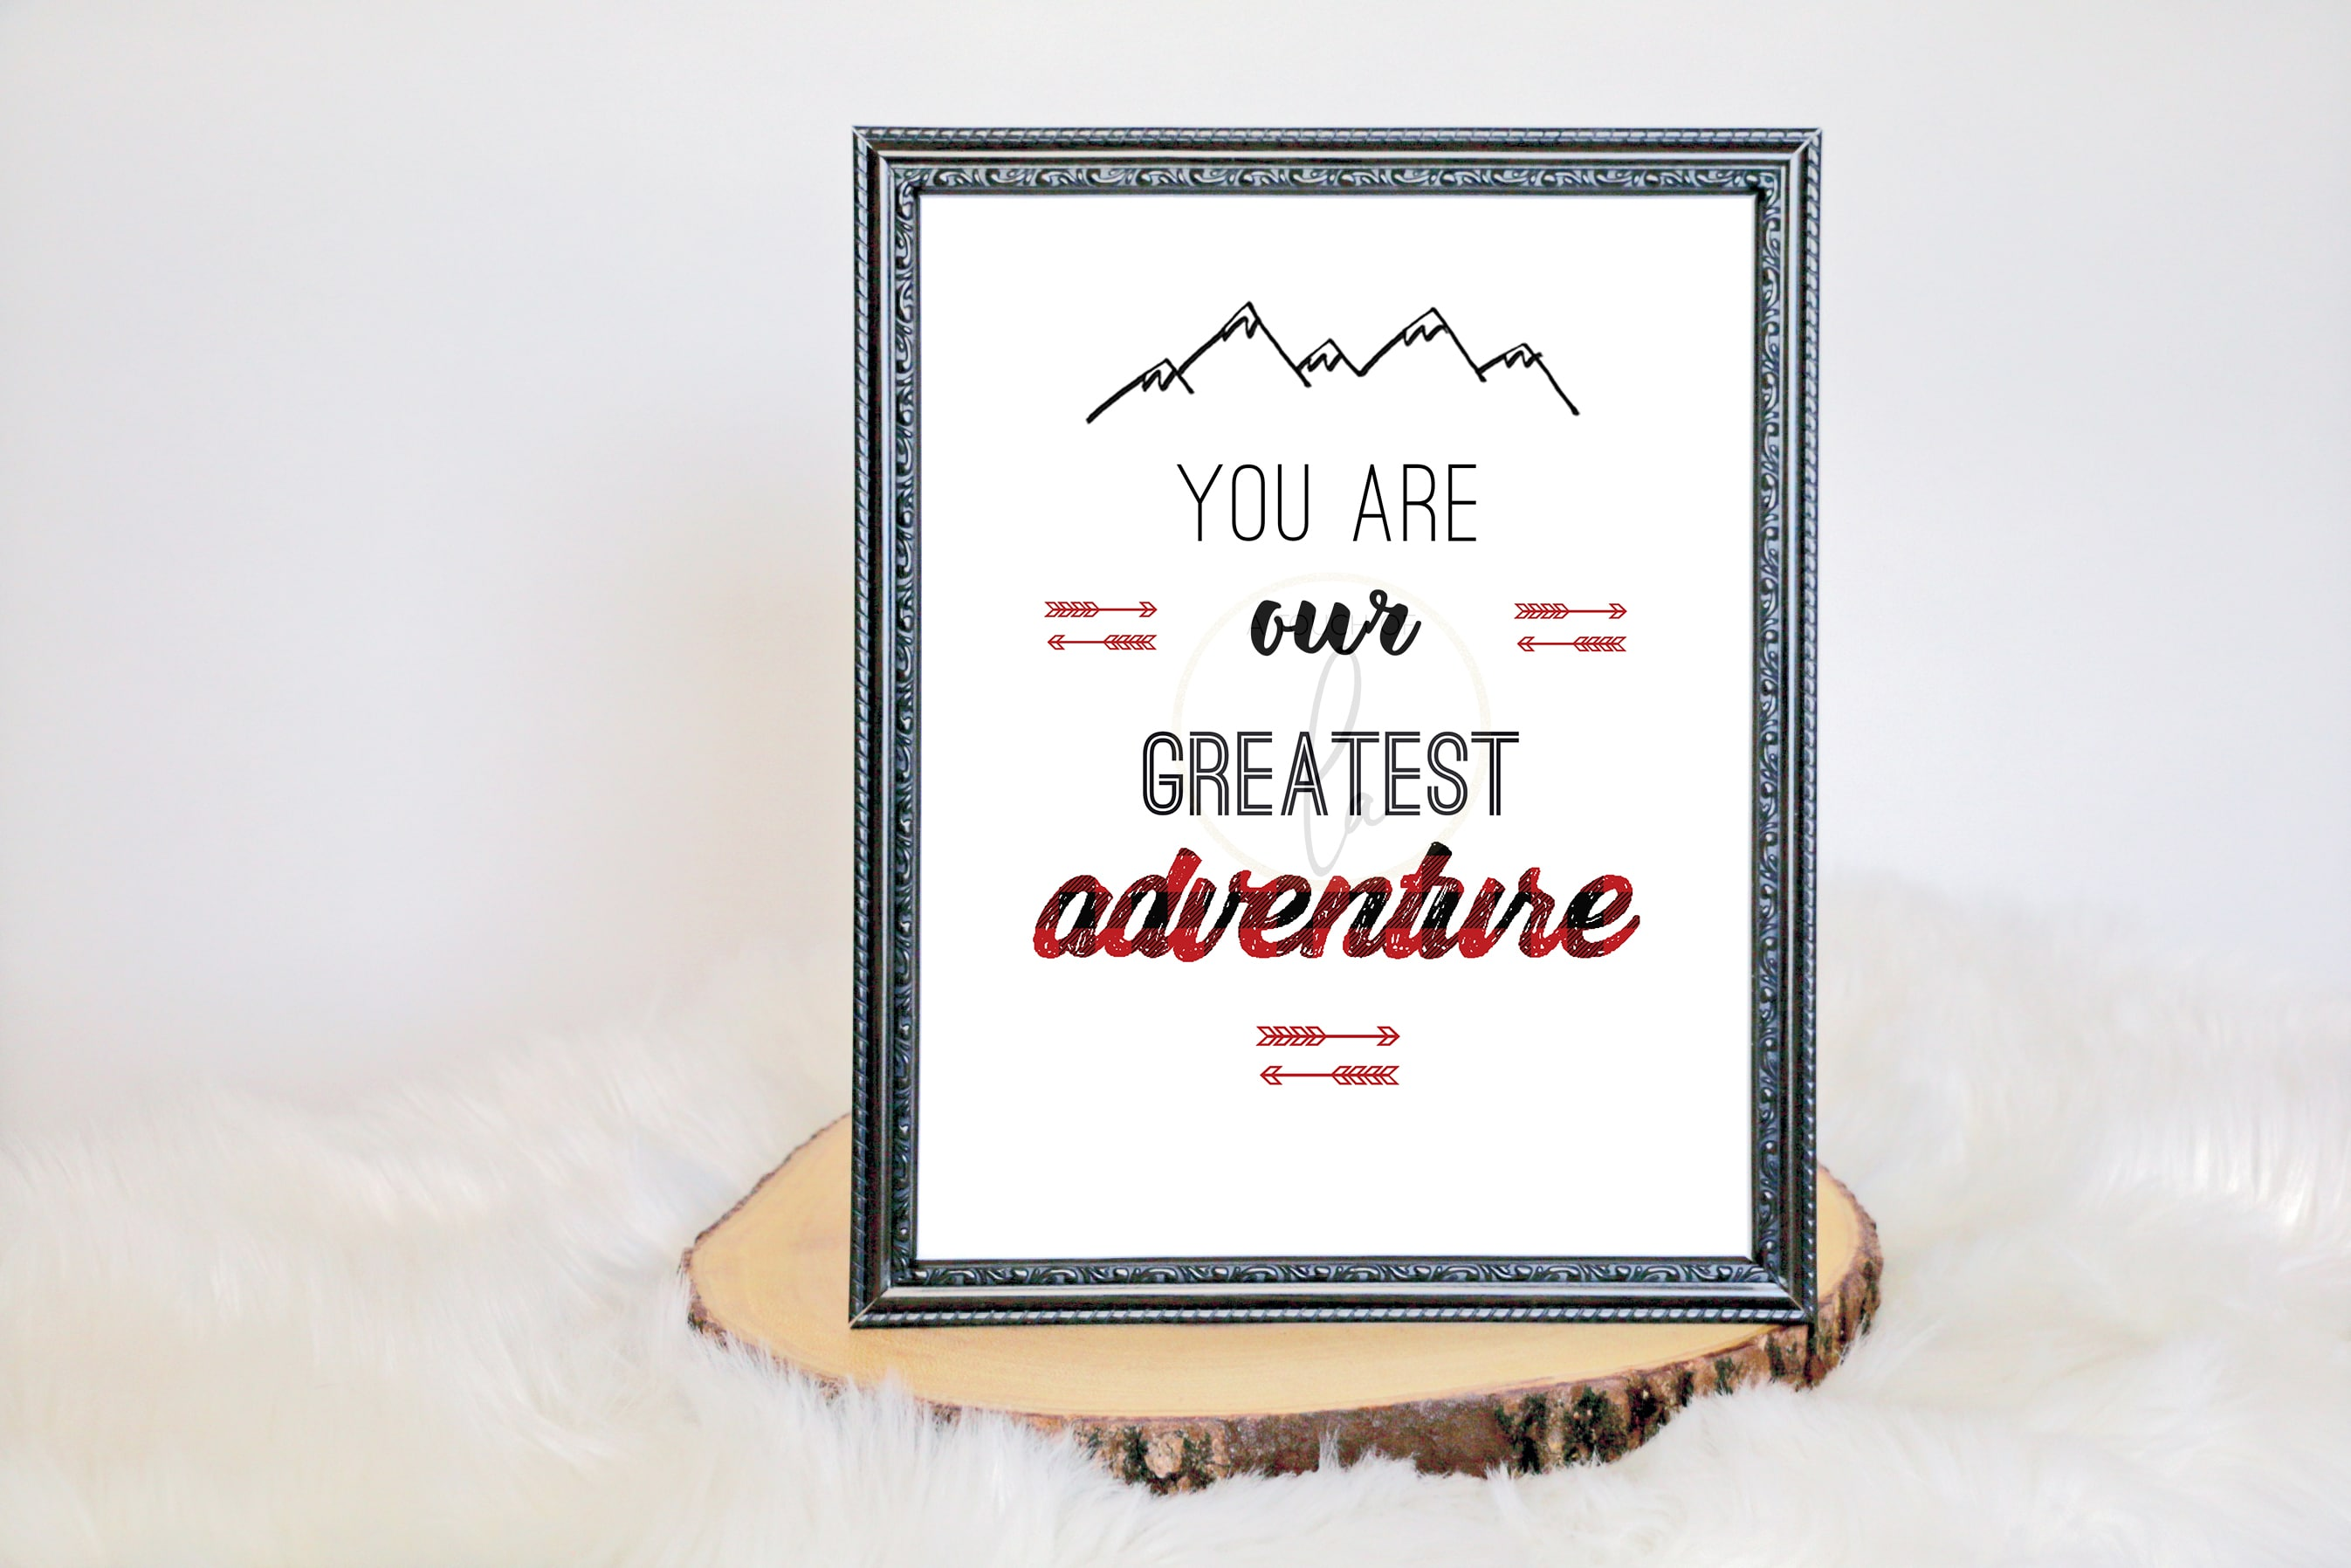 You Are Our Greatest Adventure Buffalo Plaid Sign